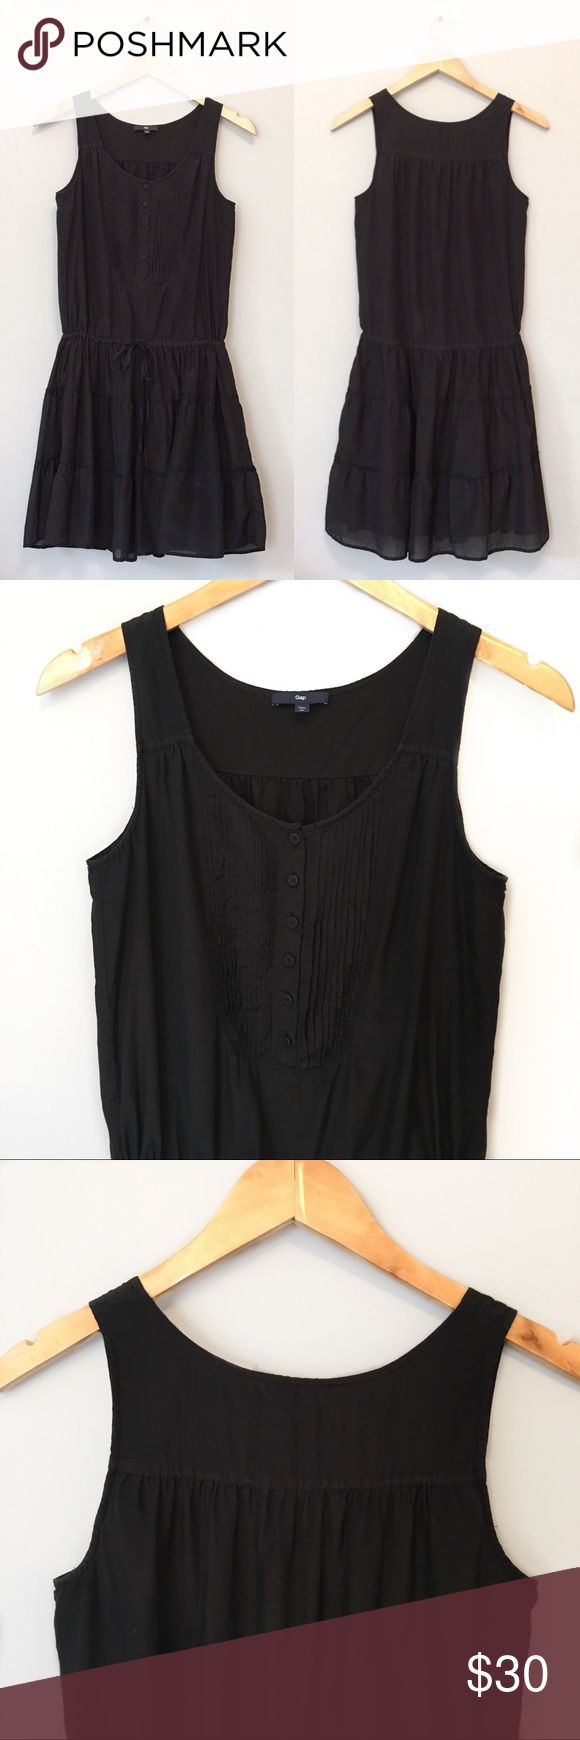 """💟CLEARANCE Gap Dress Cotton-Silk Blend Scoop neck sleeveless Gap dress in Black  Details: ▫️Size XS ▫️Shell 57% cotton 43% silk ▫️Lining 100% cotton ▫️Fully lined ▫️Pull-over style ▫️Pleated front placket with 6 buttons ▫️Cinch tie at waist ▫️Bottom ruffled layers ▫️Machine wash  ▫️Excellent used condition ▫️Pet free/smoke free  Measurements taken flat ▫️Bust 18"""" ▫️Length 35""""  JF.7.17 GAP Dresses"""